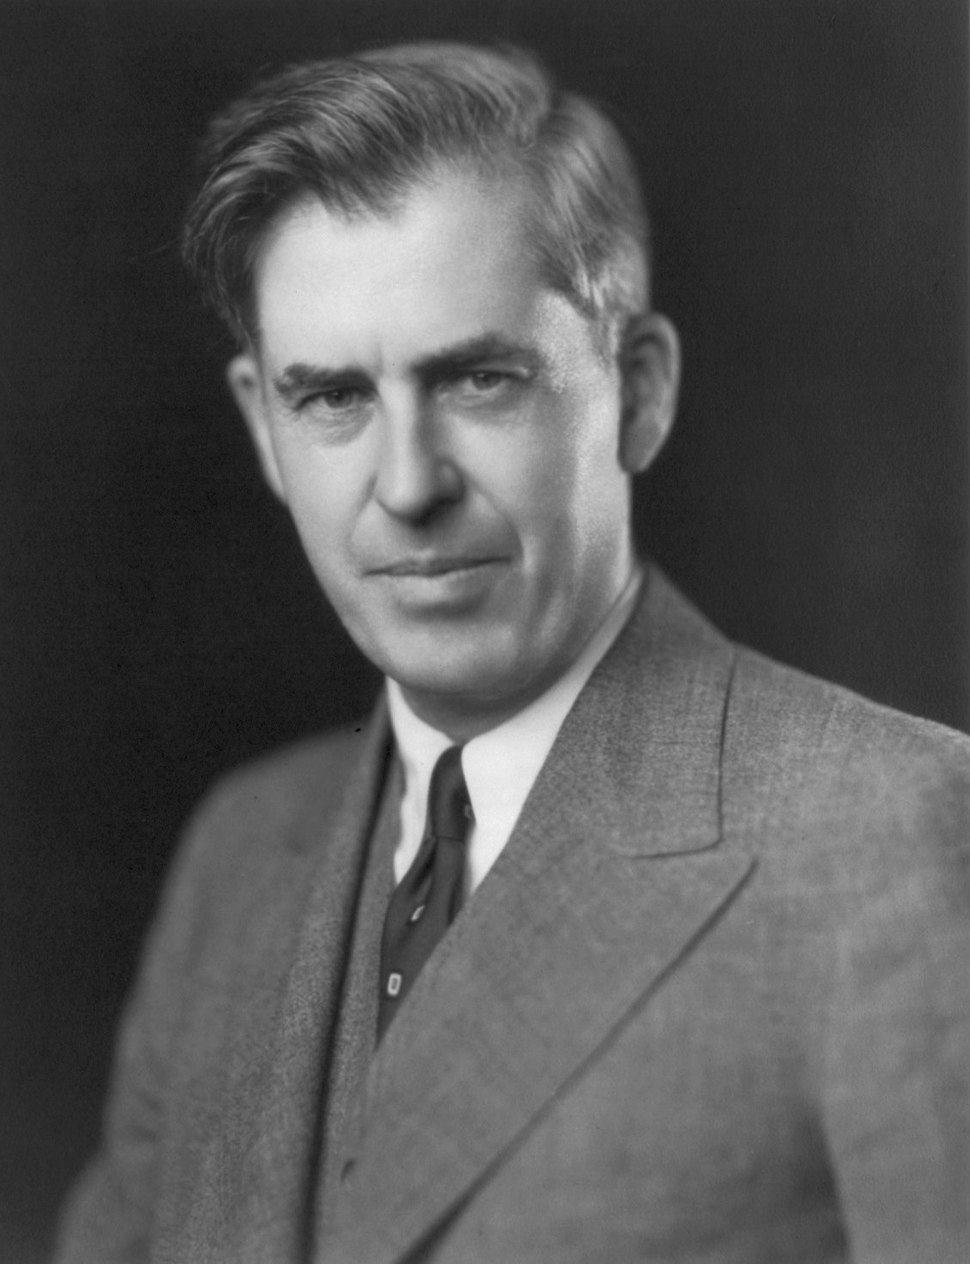 Black-and-white image of the head and shoulders of man about fifty with upswept hair, wearing a gray suit and a dark tie